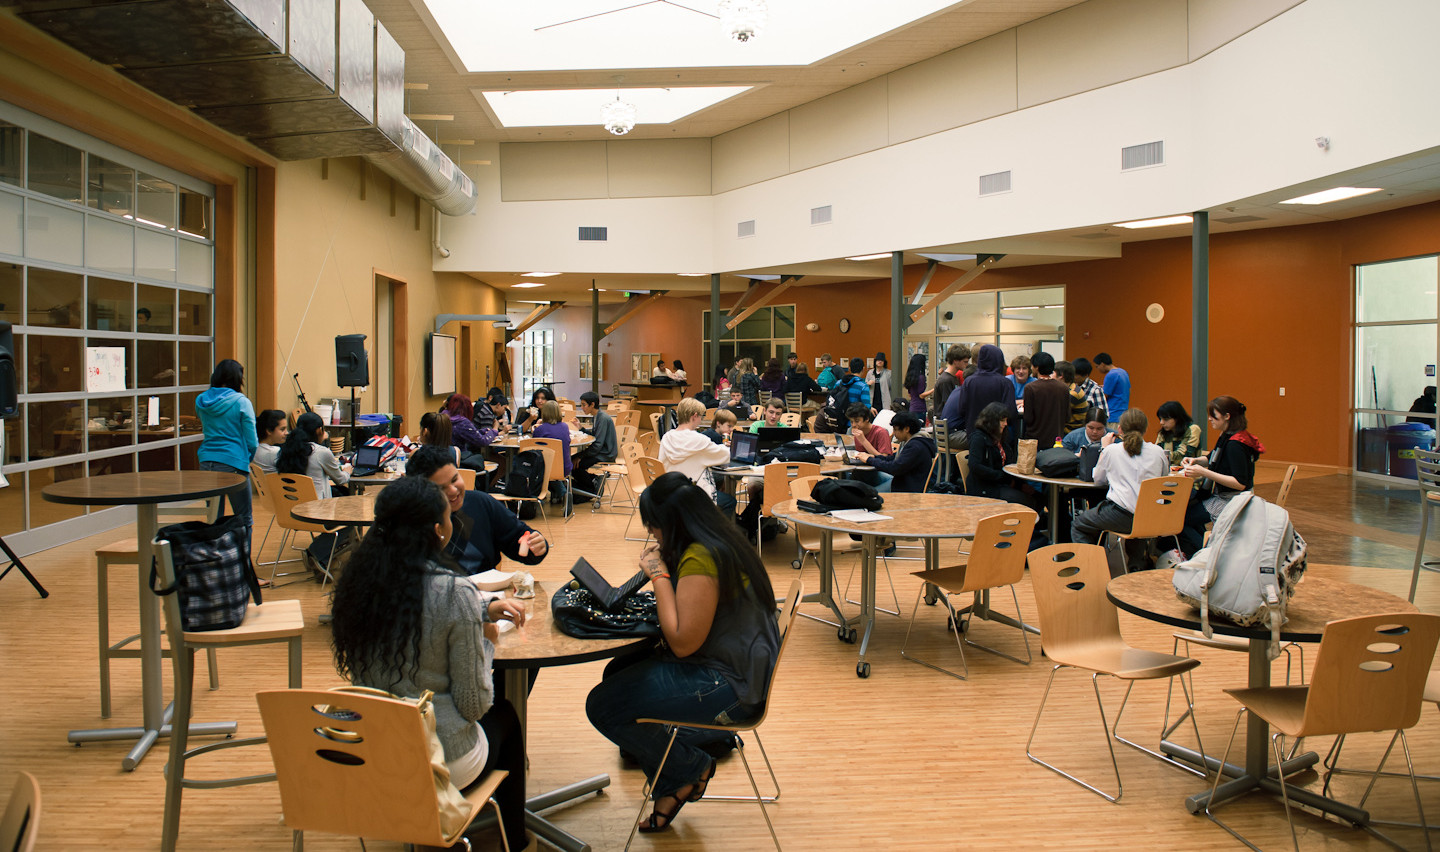 Classroom Design With Technology In Mind ~ For back to school reimagine classroom design mindshift